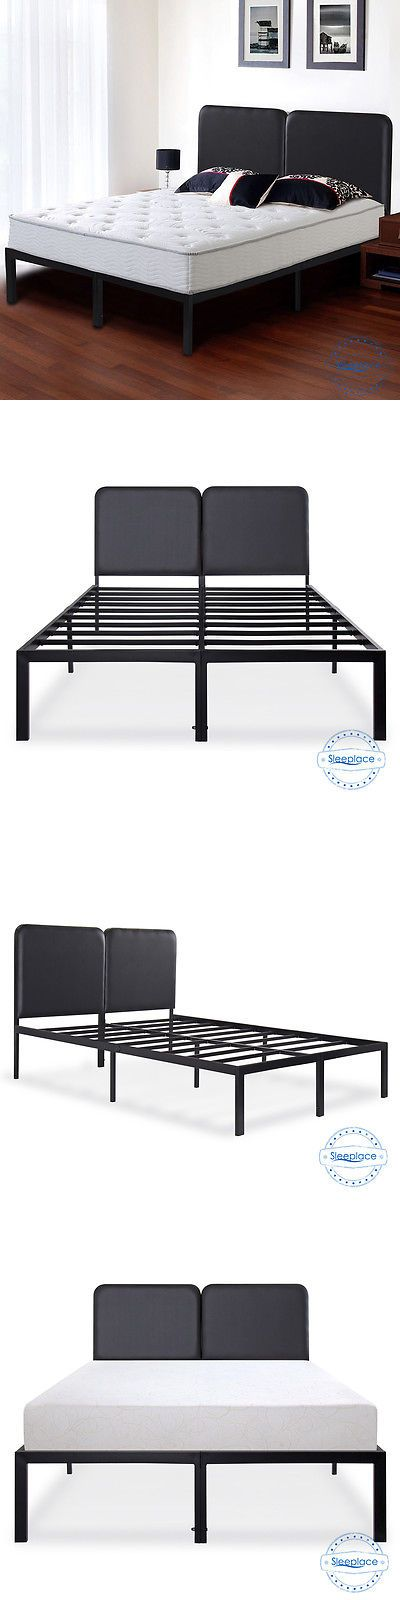 Beds and Bed Frames 175758: Sleeplace Steel Slat Sturdy Metal Platform Bed Frame With Faux Leather Headboard -> BUY IT NOW ONLY: $145.86 on eBay!